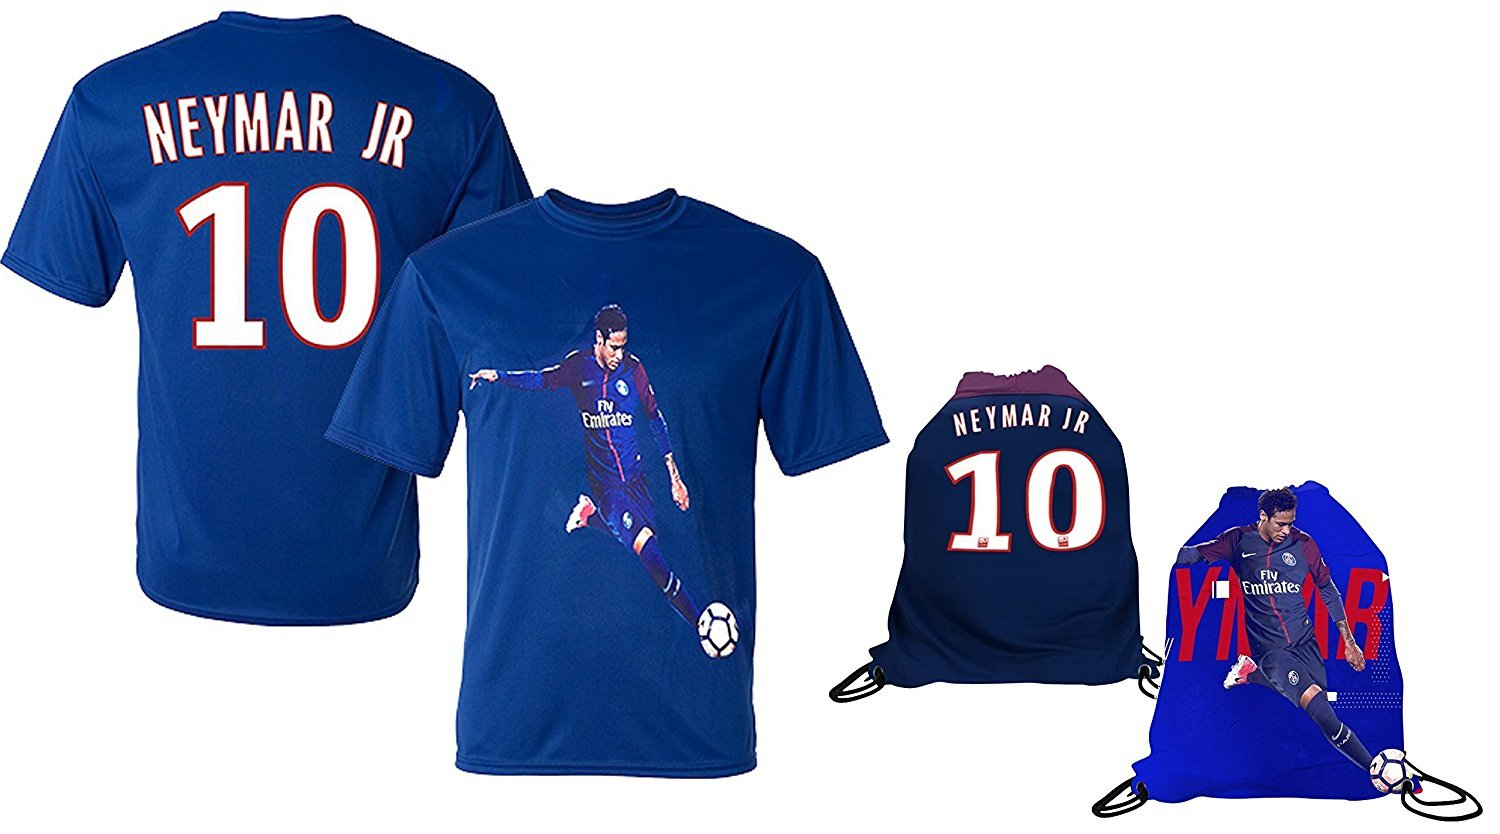 sale retailer 9407f 3301b Details about Neymar Jersey Style T-shirt Kids Neymar Jr Jersey PSG T-shirt  Gift Set Youth...